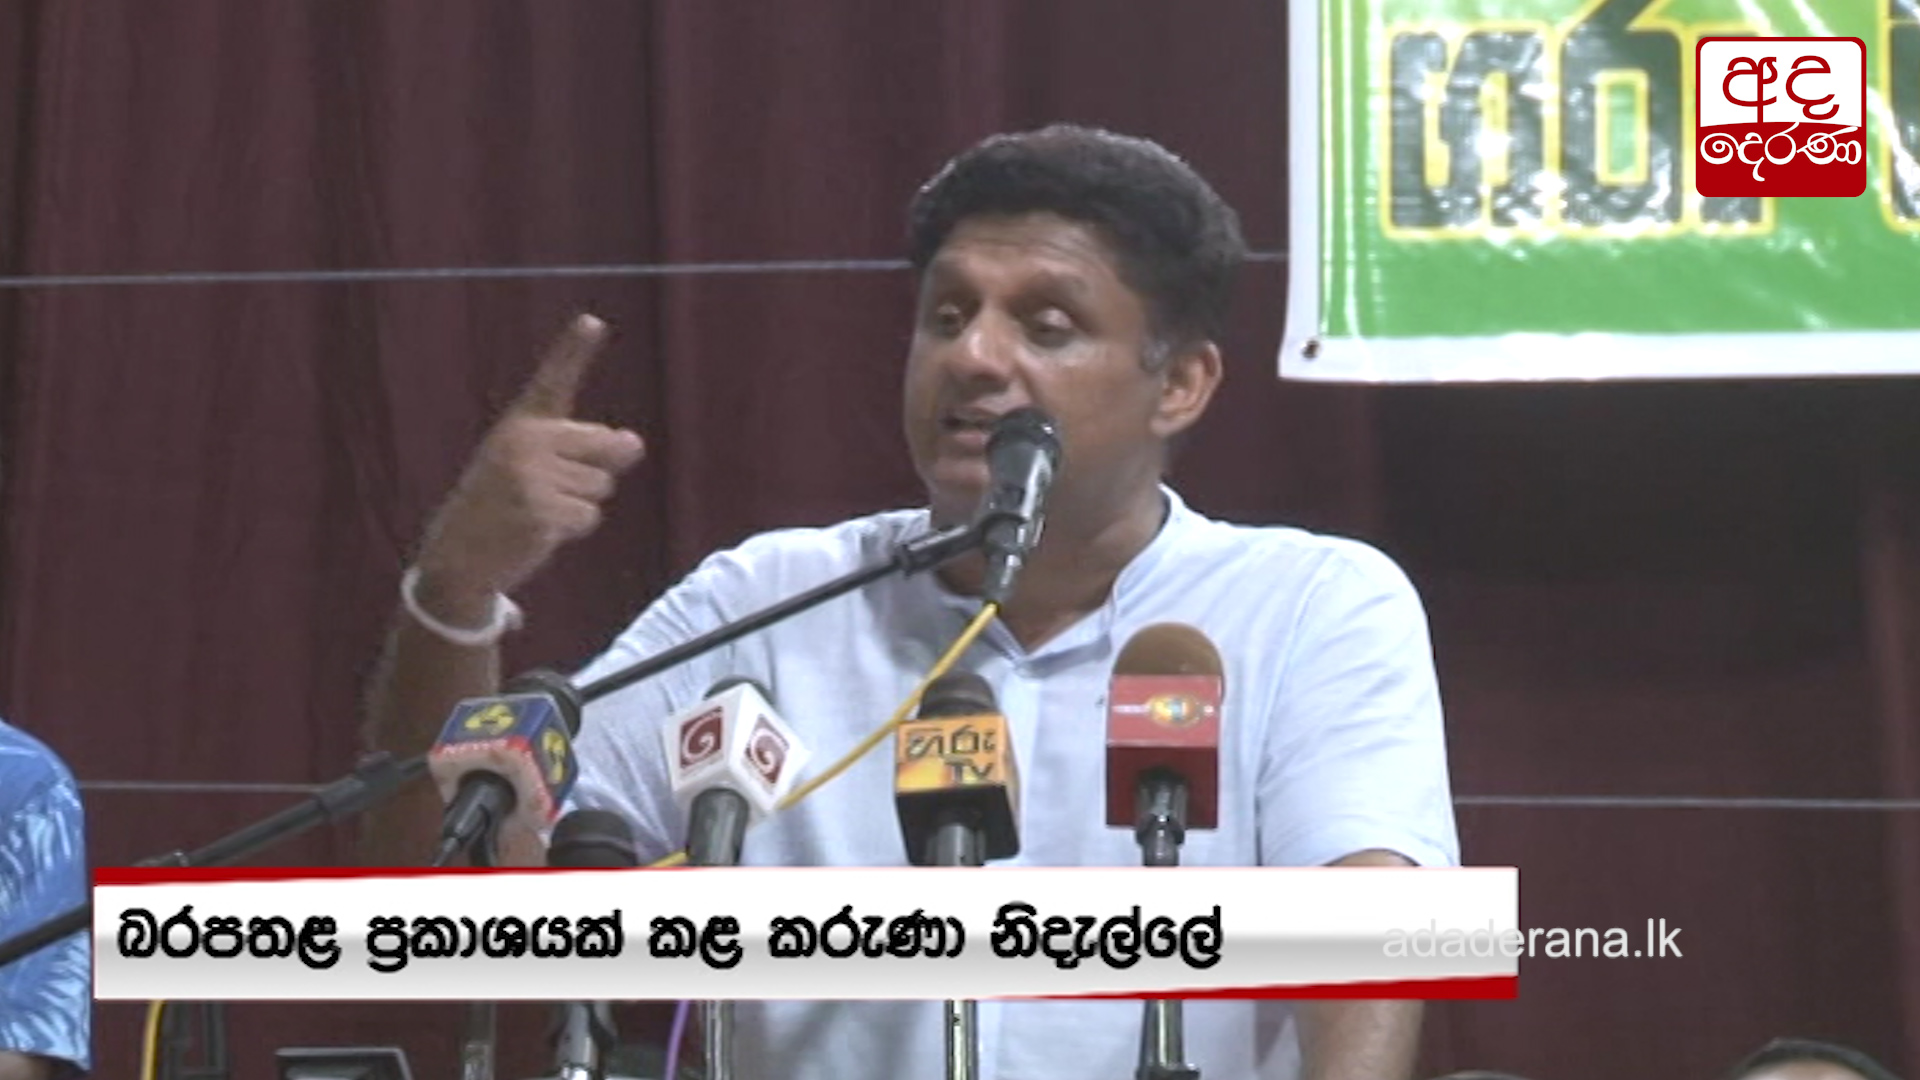 Sajith on how to prevent terrorism from emerging again